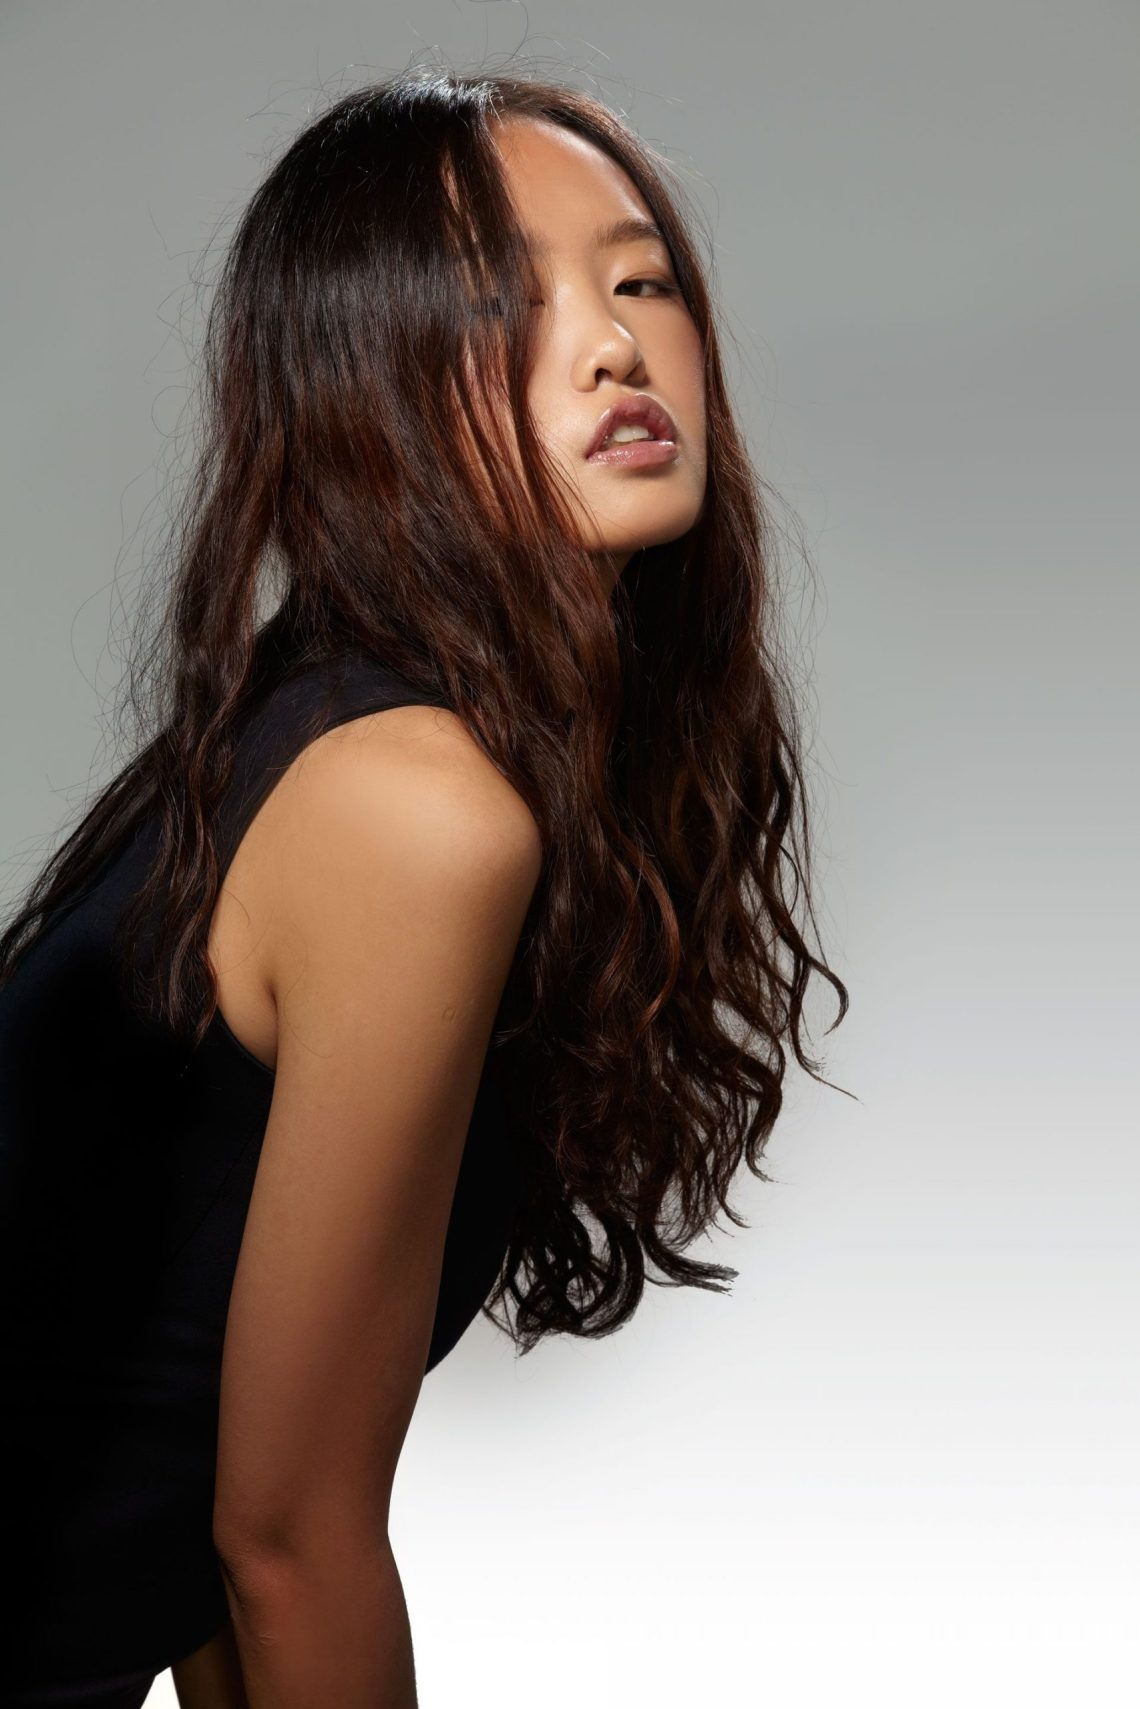 Best Asian Hairstyles & Haircuts How To Style Asian Hair Asian Women'S Hairstyles Medium Length